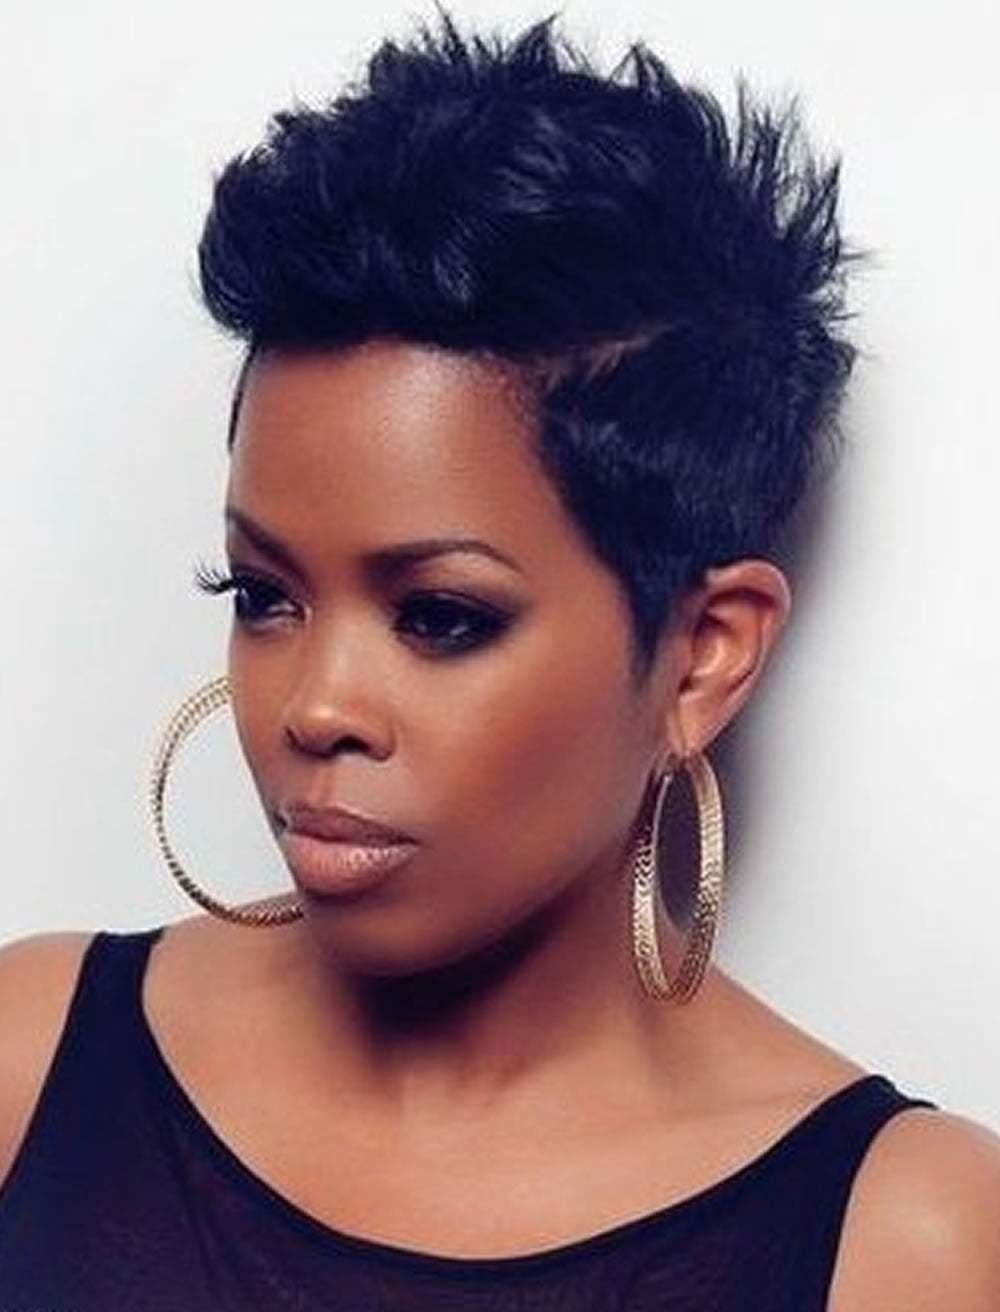 Free Pixie Short Hairstyles For Black Women 2018 2019 – Hairstyles Wallpaper